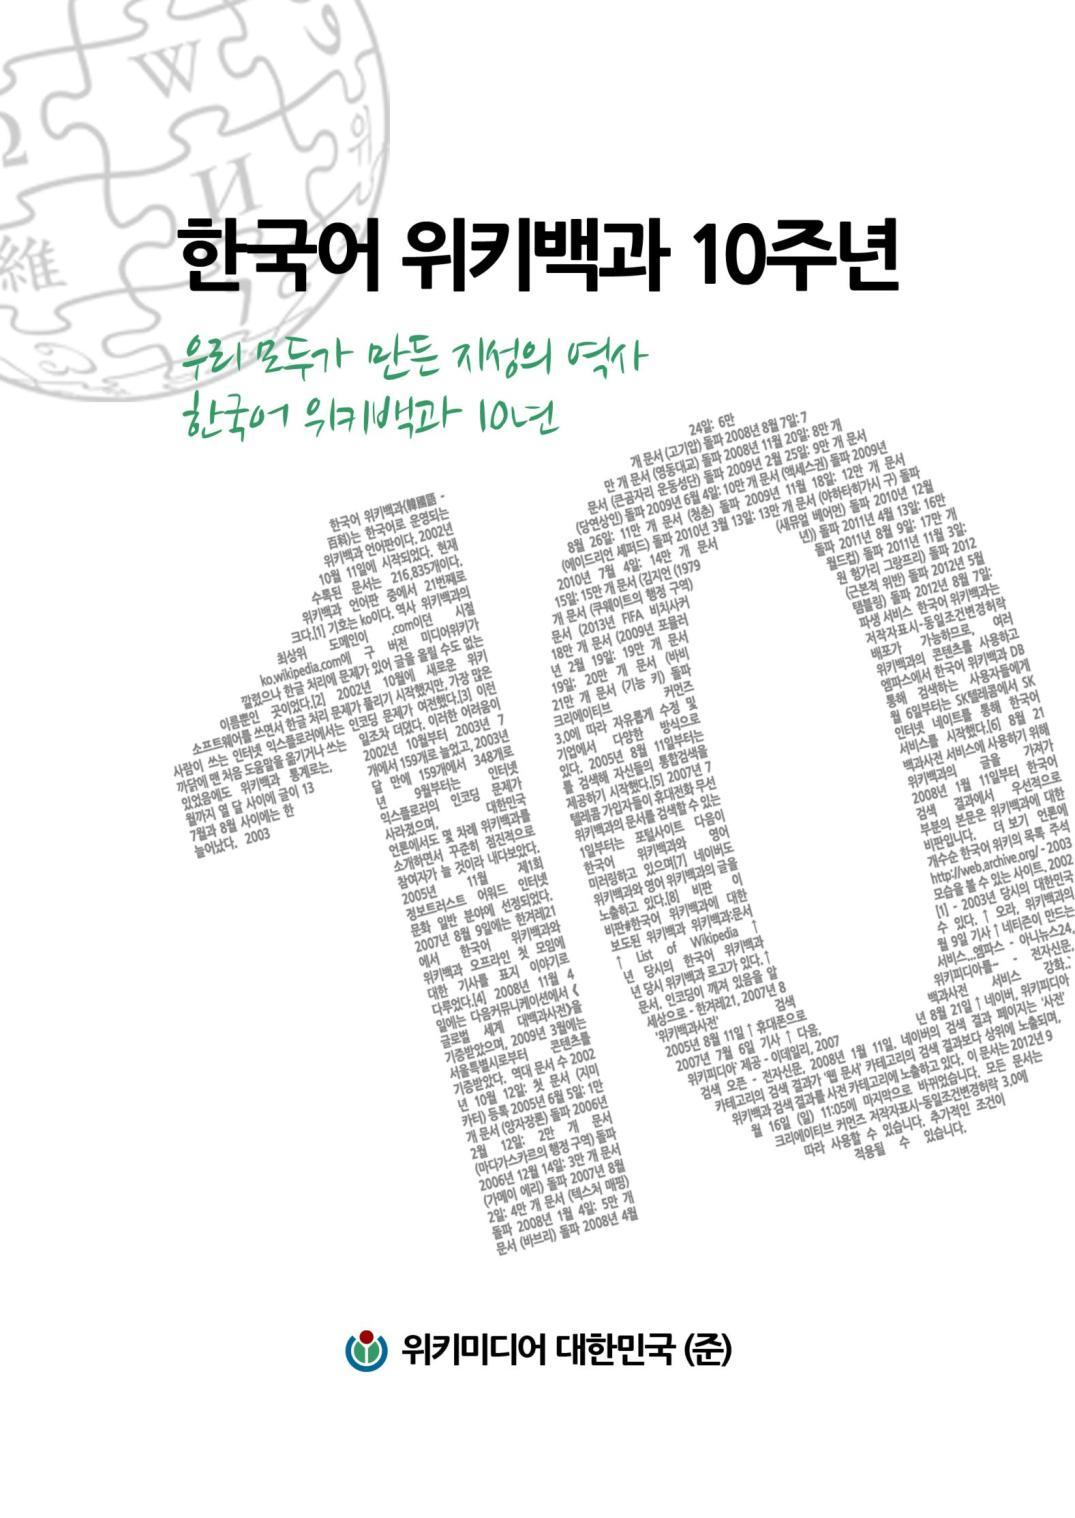 File:Korean Wikipedia 10th anniversary book.pdf